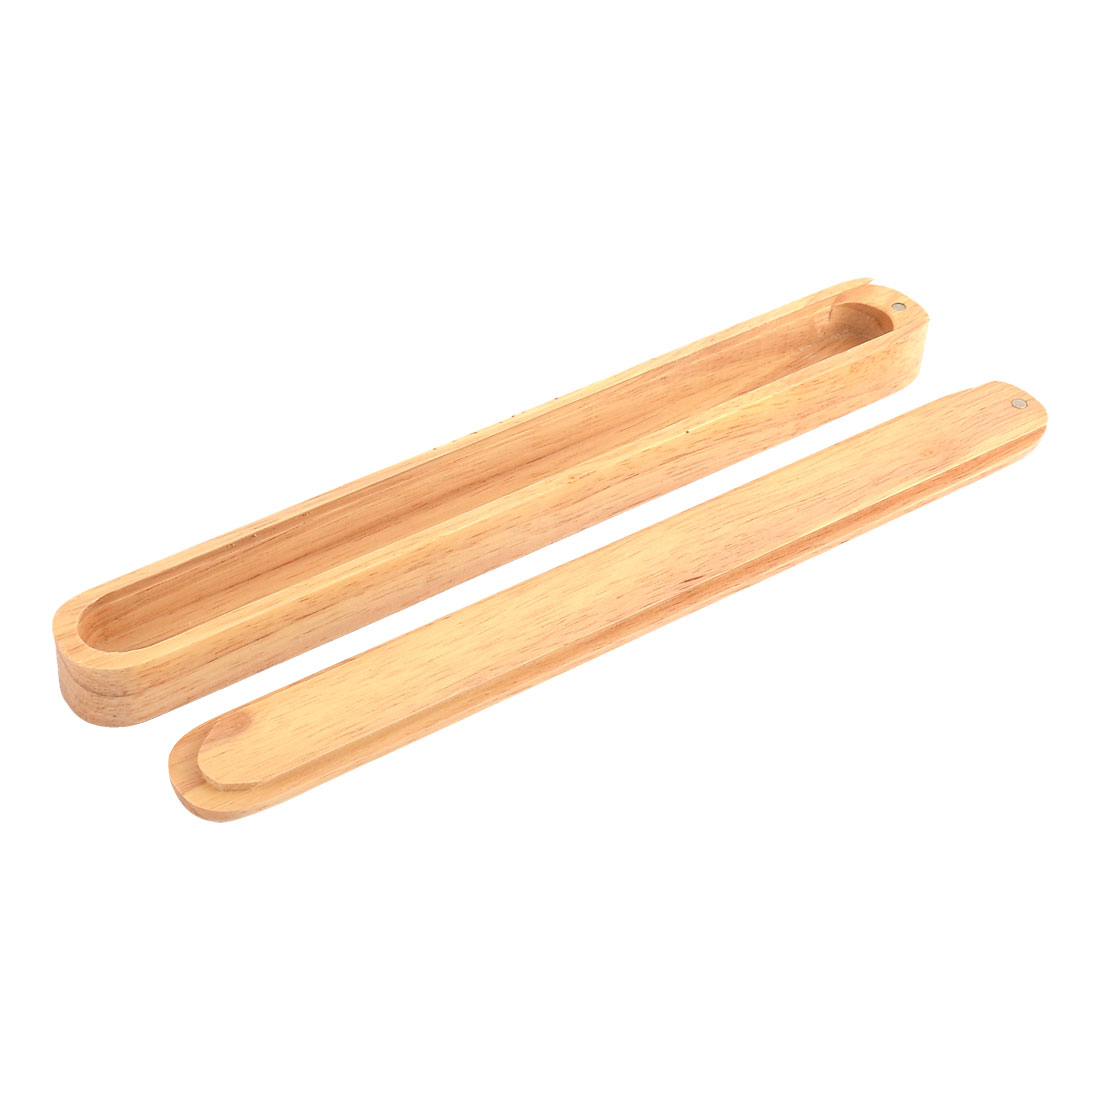 Household Restaurant Wooden Removable Chopsticks Cage Holder Container